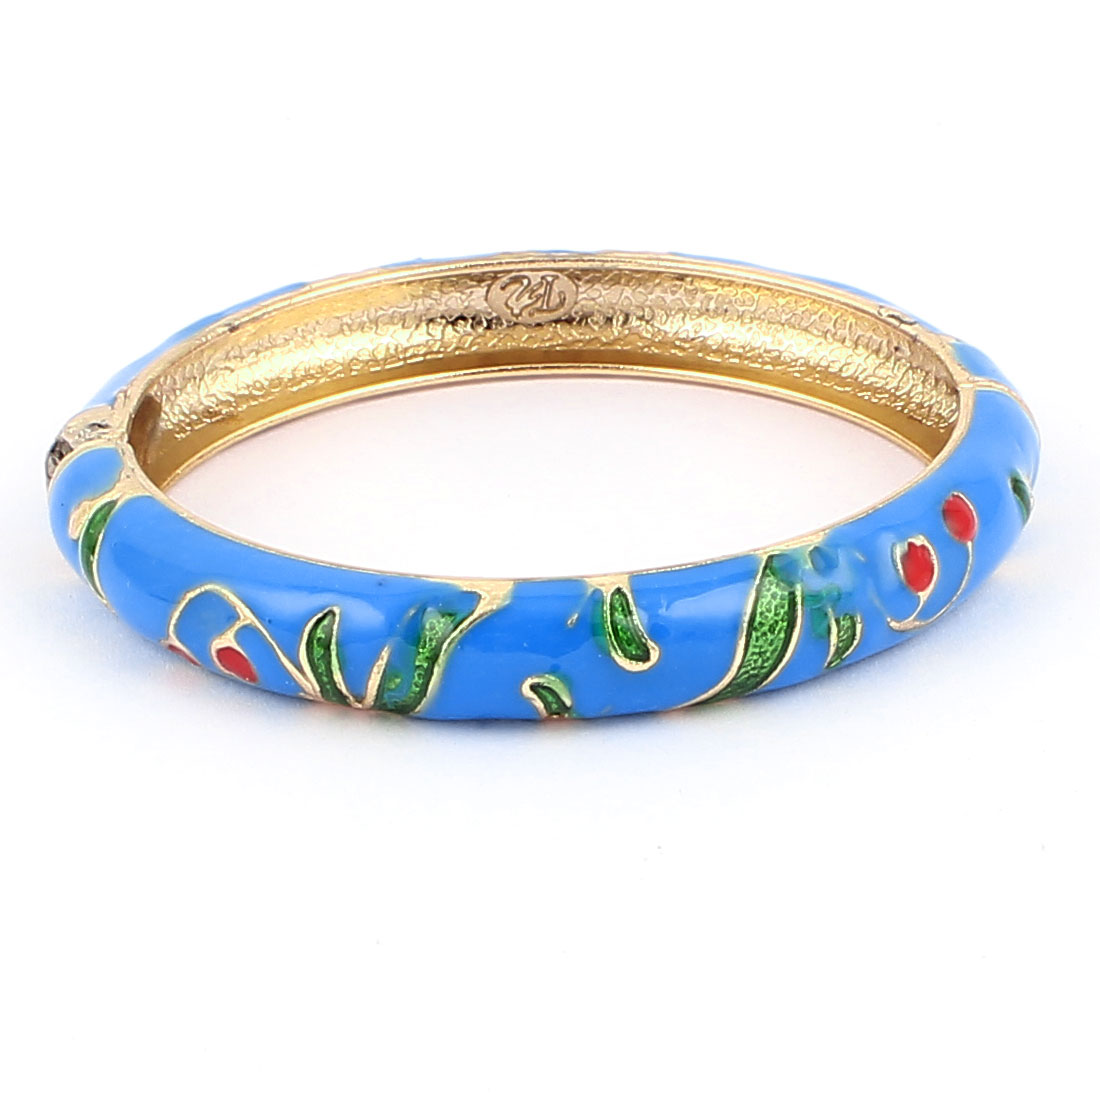 Woman Lady Spring Hinged Round Cuff Floral Pattern Enamel Bracelet Bangle Blue